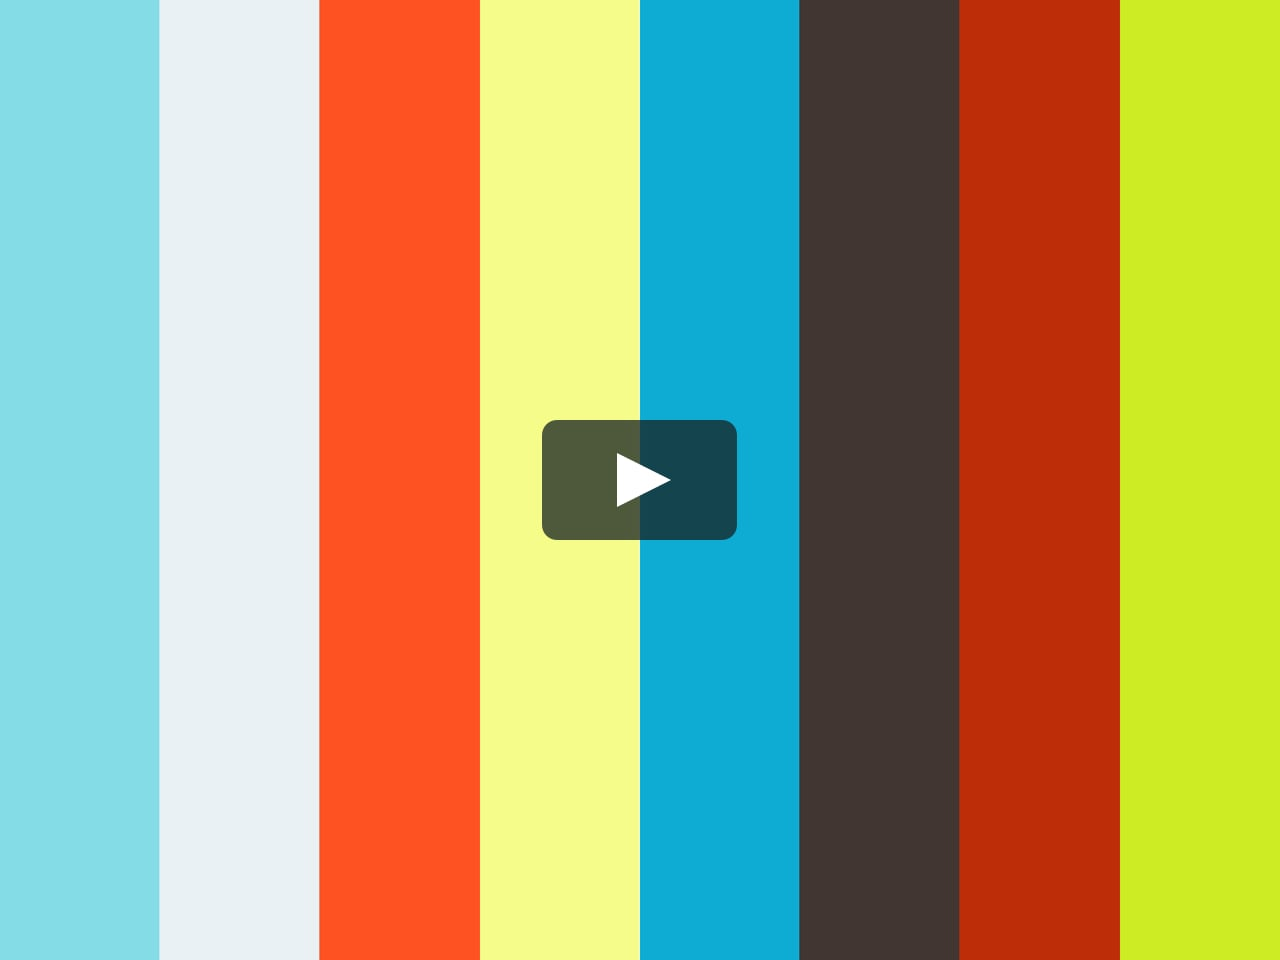 Video como instalar fibra piscinas cano c 61 on vimeo for Instalacion piscina